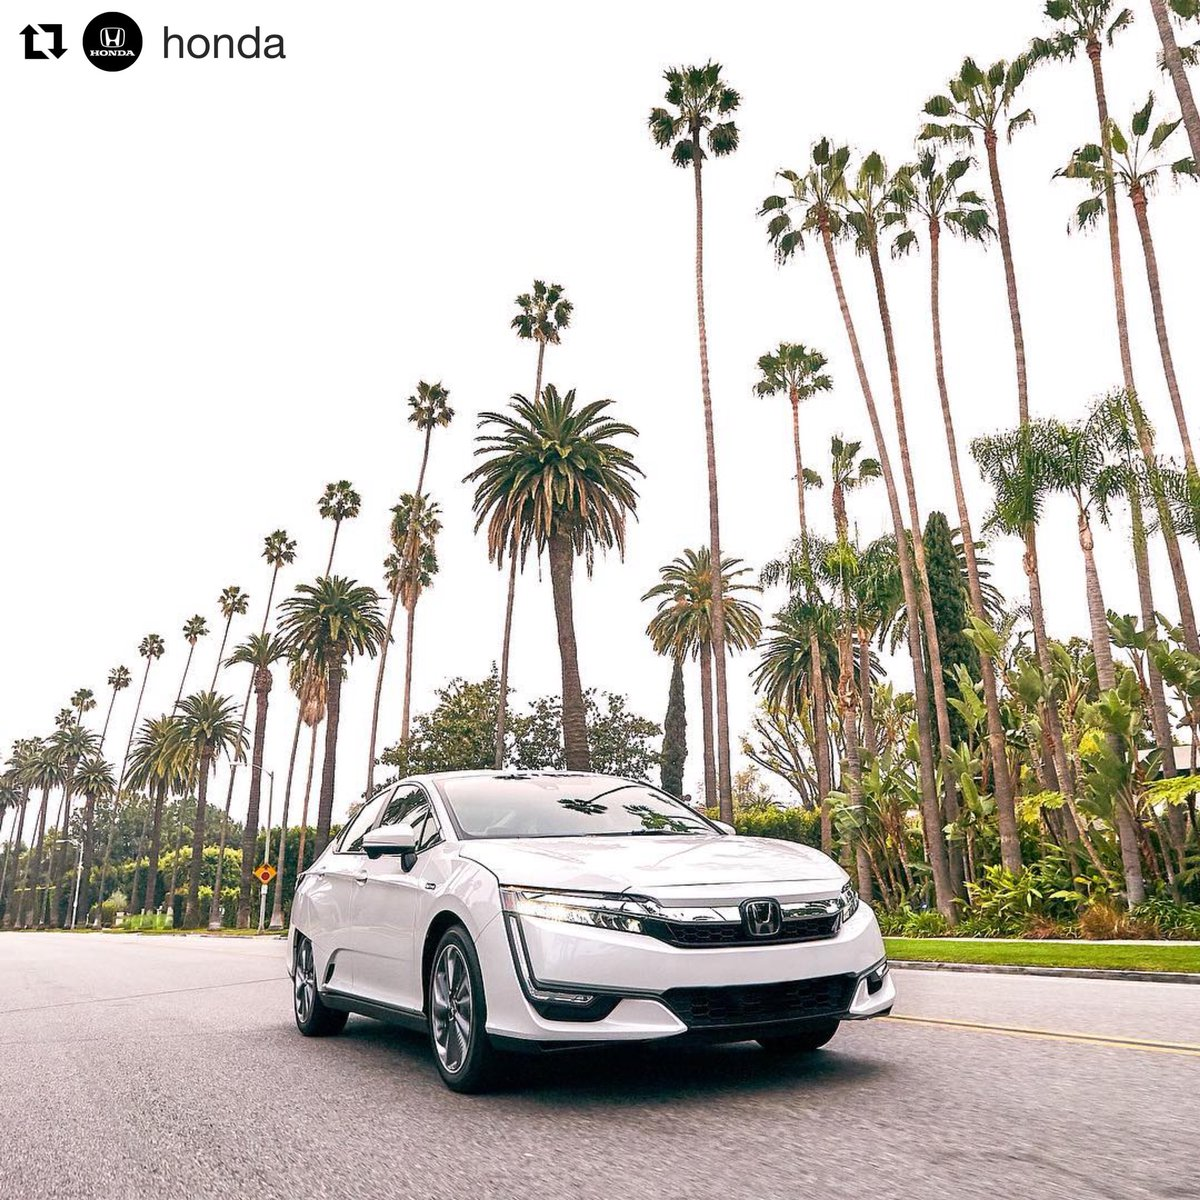 It Runs On Electric And Has Gas For Longer Trips Honda Clarity Pluginhybrid Summer Summervibespictwitter OS2MUUcwir